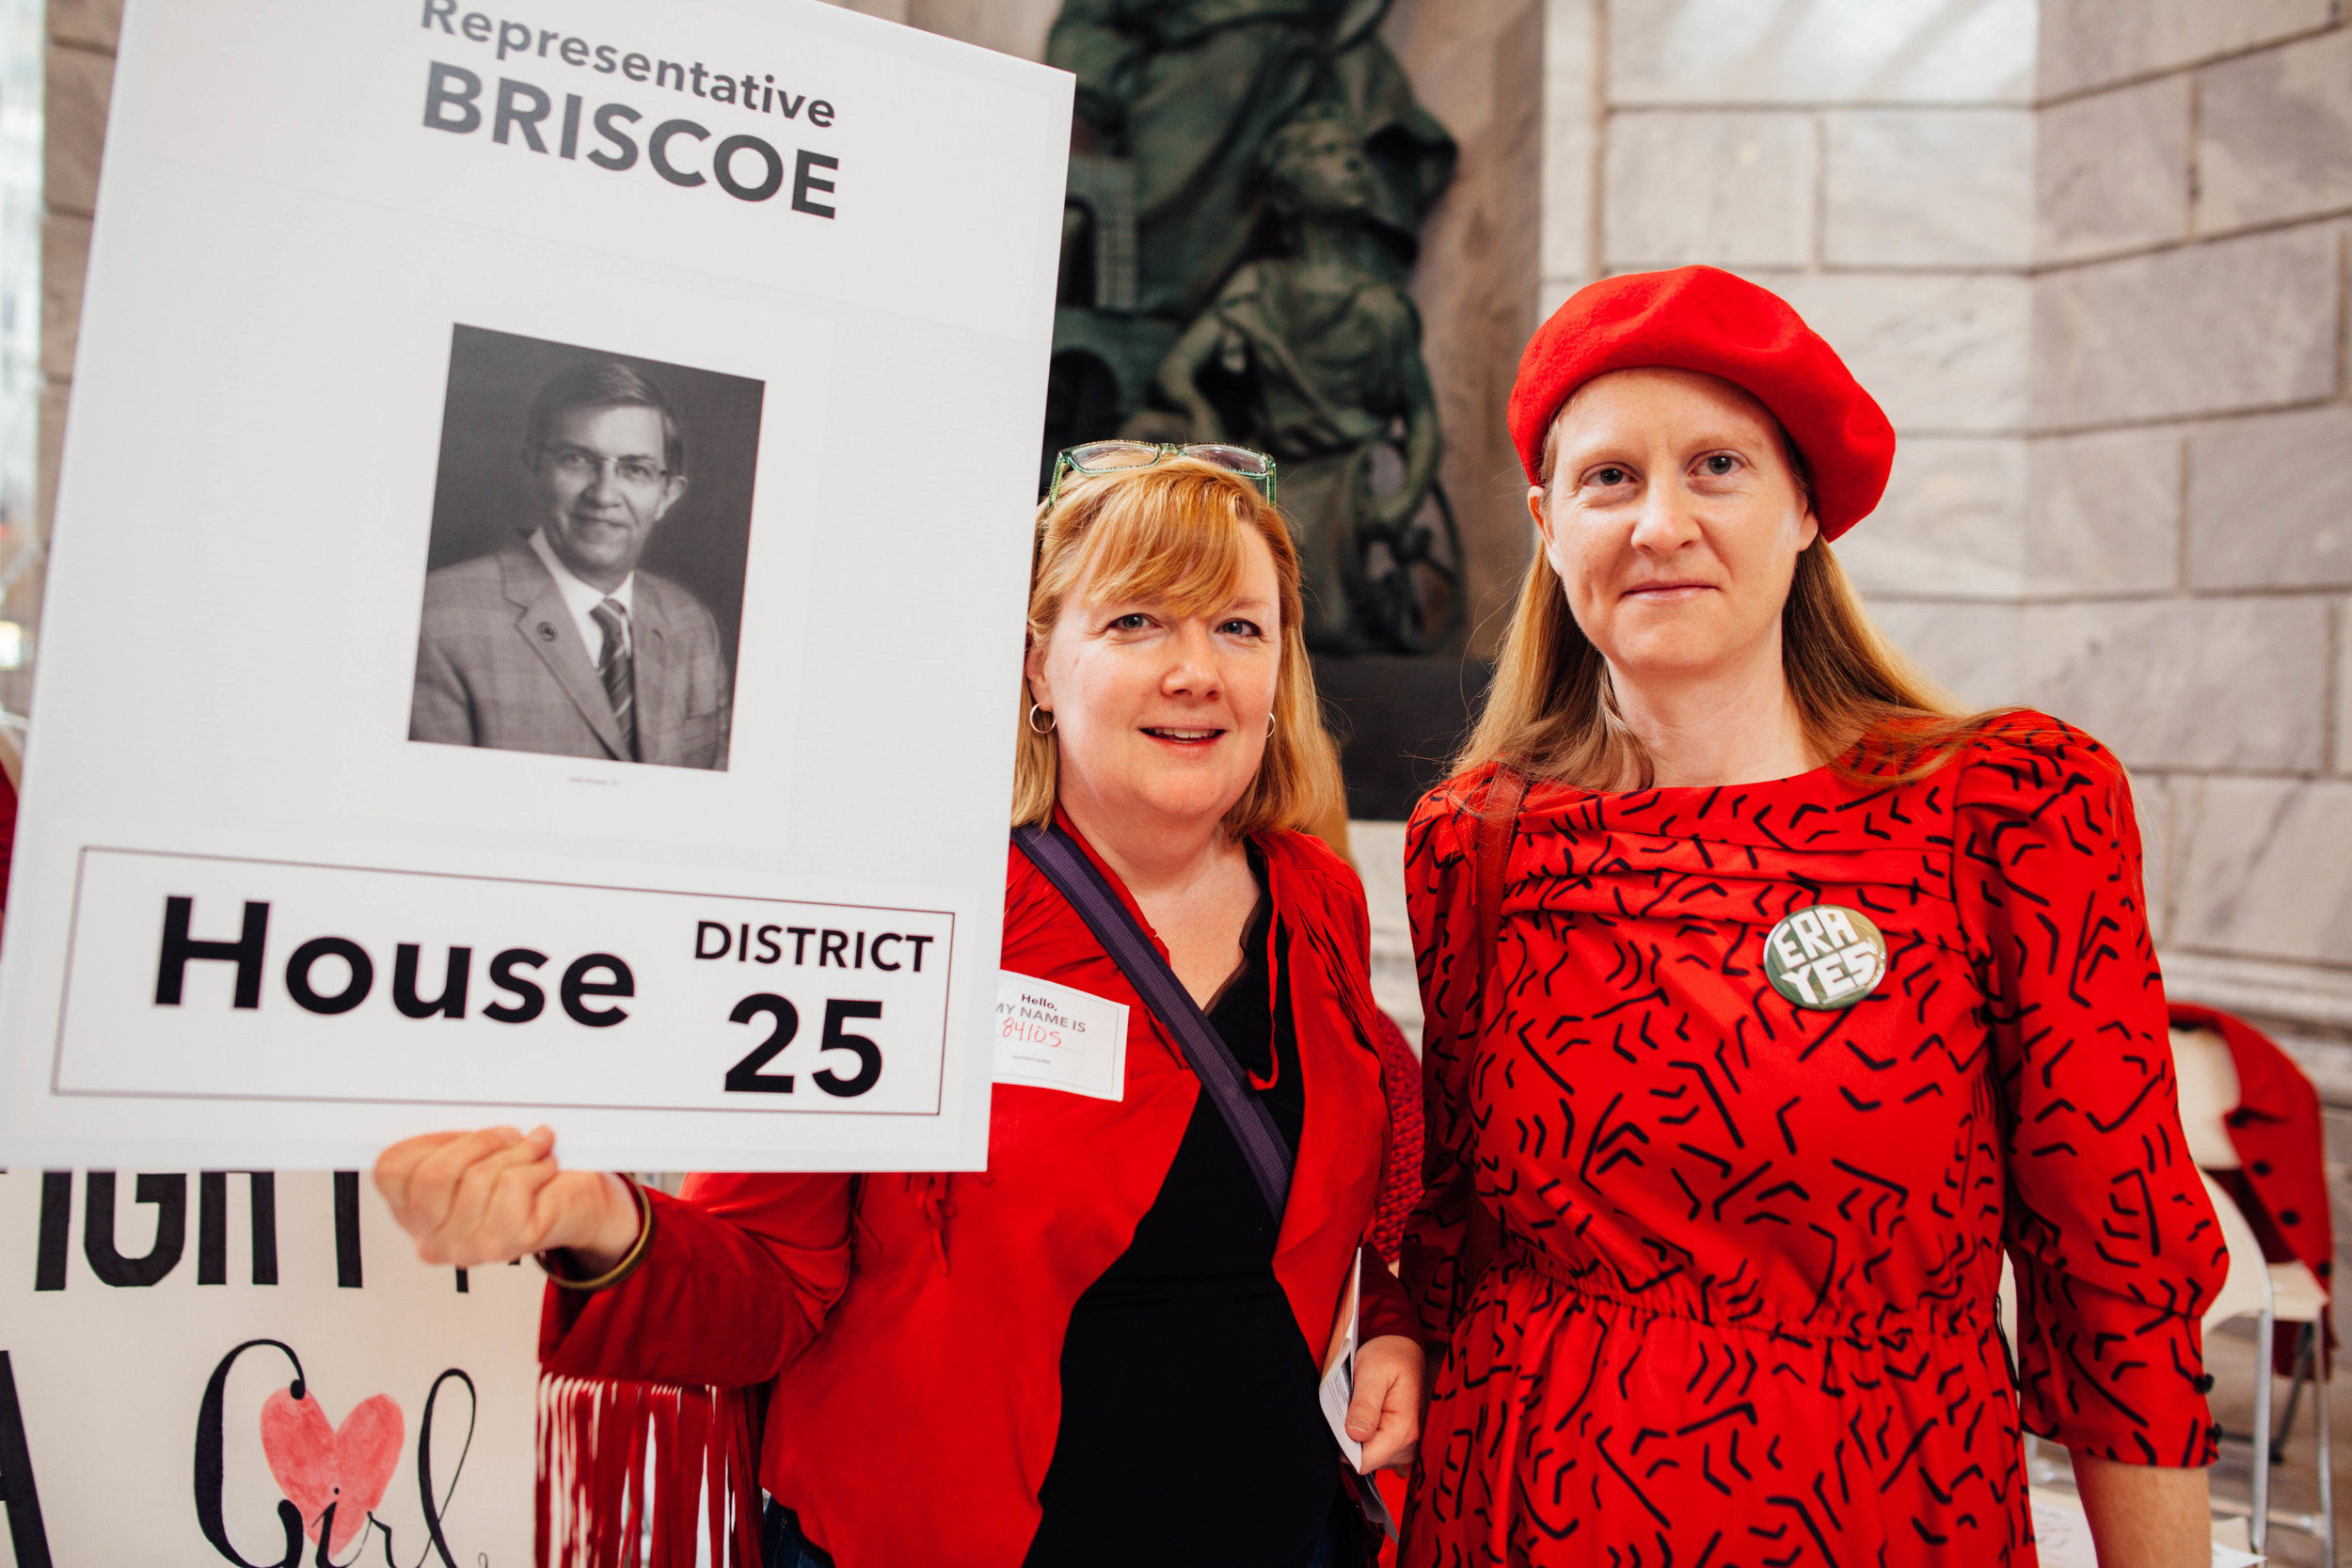 """Jen Simonds (left) and Brenda Sieczkowski (right), both residents of Salt Lake CIty, said even though they belong to the most liberal district in the state, they still wanted to add their voice to the cause for women's rights. Sieczkowski said, """"they like numbers they can quantify,"""" and so she will be part of the 35% of Utah progressives who will speak up."""